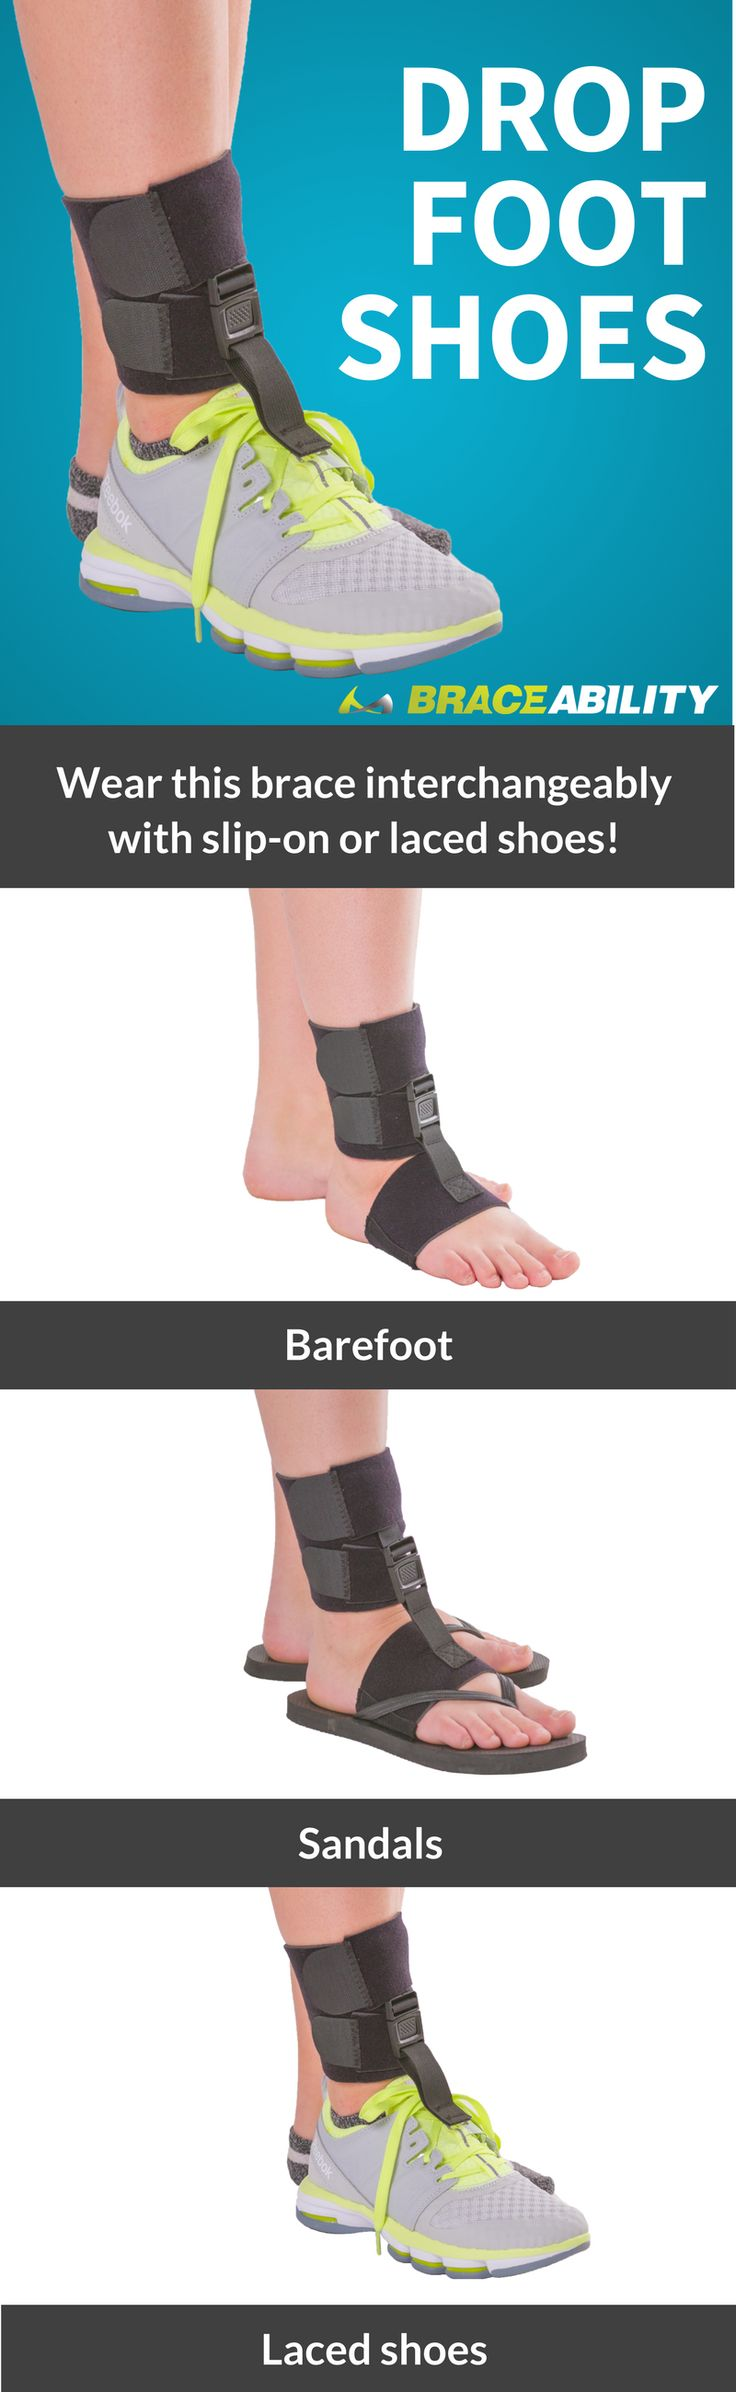 Best Shoe Insert For Sprained Ankle